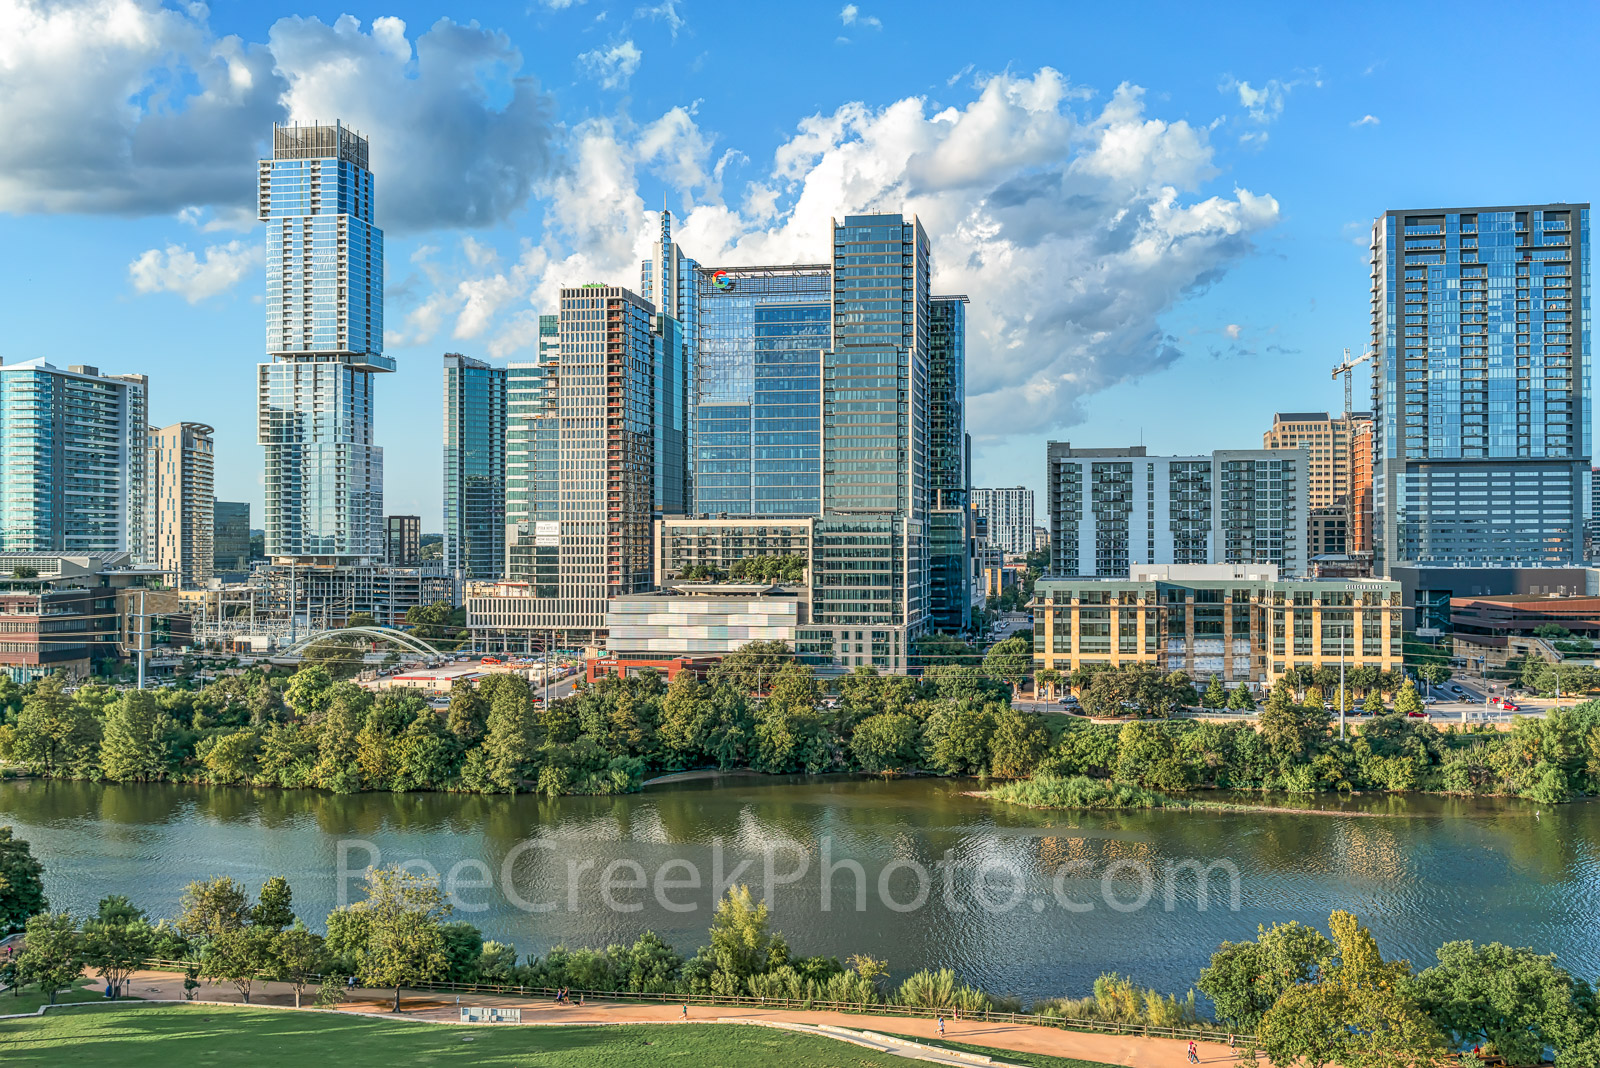 Aerial Austin Skyline, Austin, skyline, aerial, lady bird lake, hike and bike trail, cityscape, water, tallest building, Independent, Jingle, Google, Northshore Condos, W, building, city, sky-scrapers, photo